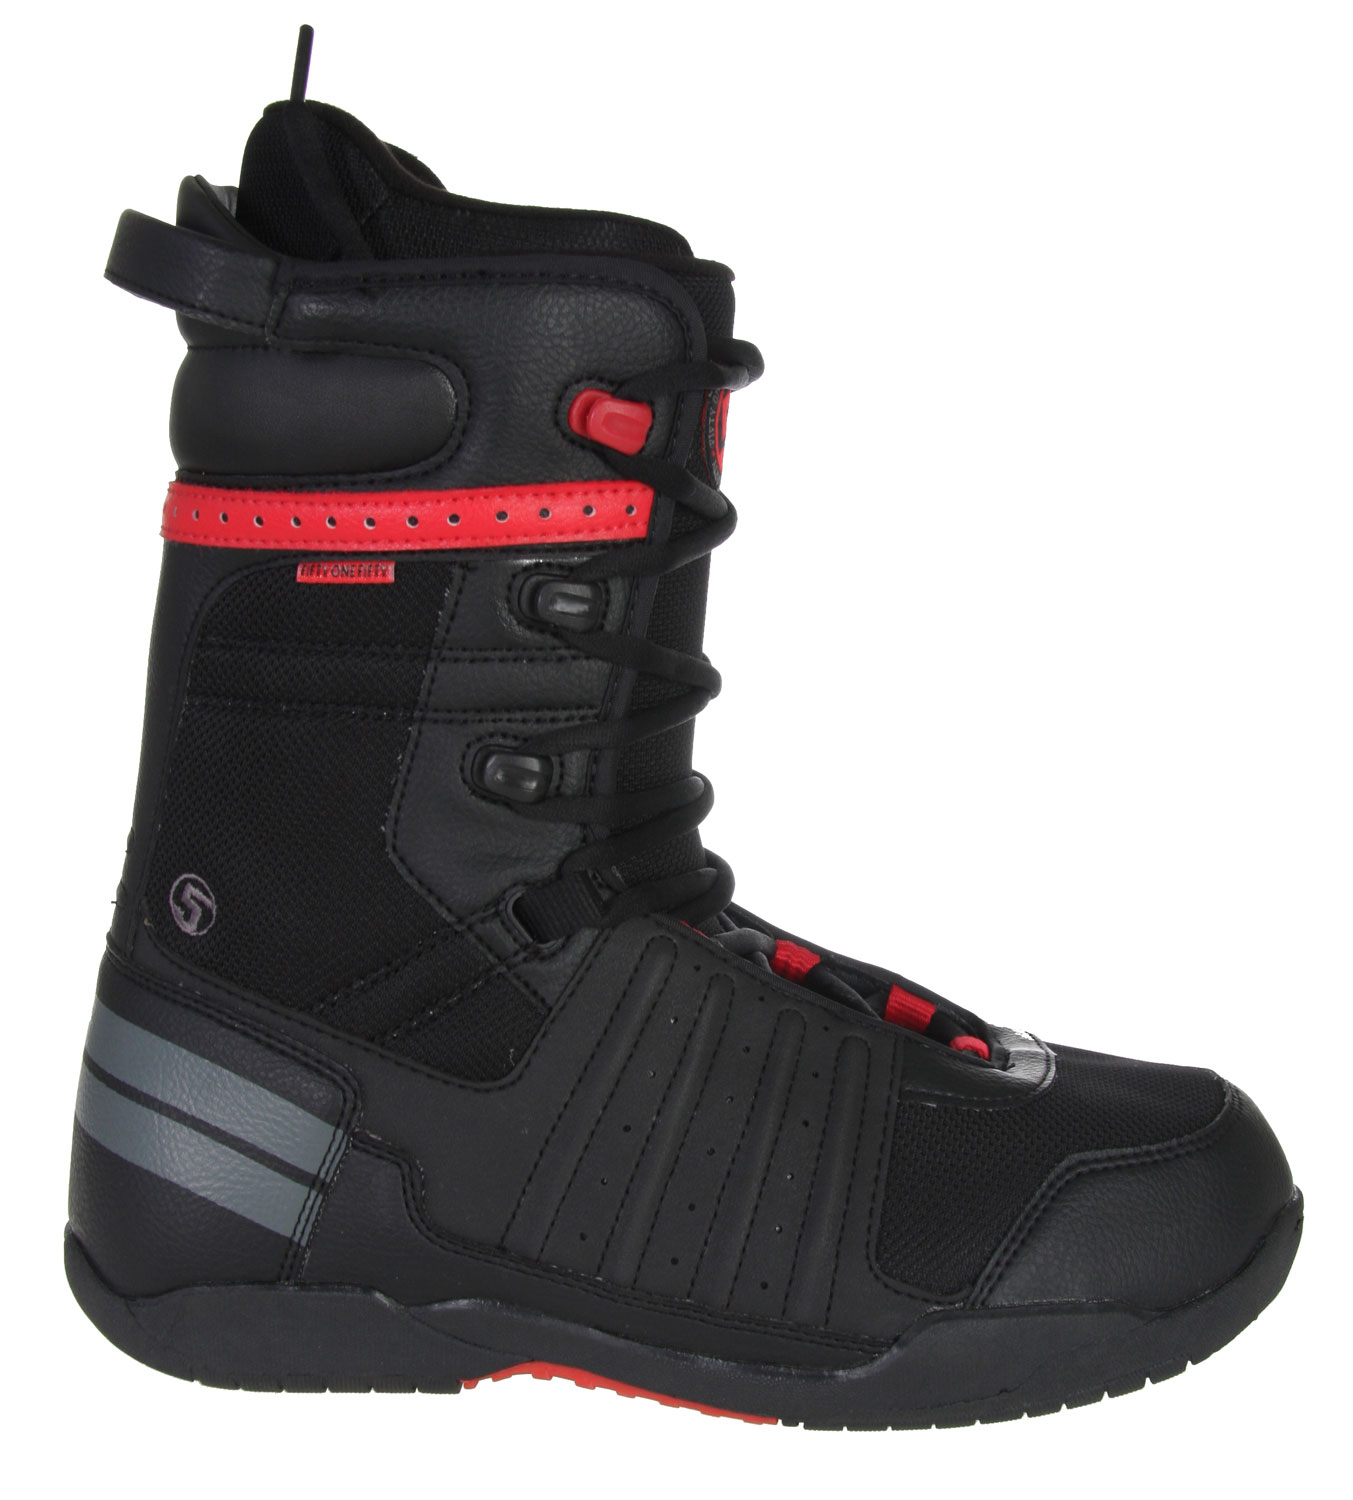 Snowboard You'd pay double for snowboard boots this good, but you don't have to! The Path CTS outsole provides cushion and traction, while the Powerfit liner features ergonomic warmth and support to keep your feet comfortable all day. Designed for all-mountain riding. The 5150 Squadron snowboard boots.Key Features of The 5150 Squadron Snowboard Boots: Path CTS Outsole with durable Rubber for a grip that won't slip PowerFit Liner with Lace Lock and Removable Insole Fitted Ankle Pocket with heel hold pads Rugged Waterproof Synthetic Leather Body Construction Webbing Lace Loops with Speed Hooks for easy lacing Multi-Zone Ankle Flex Points - $77.95